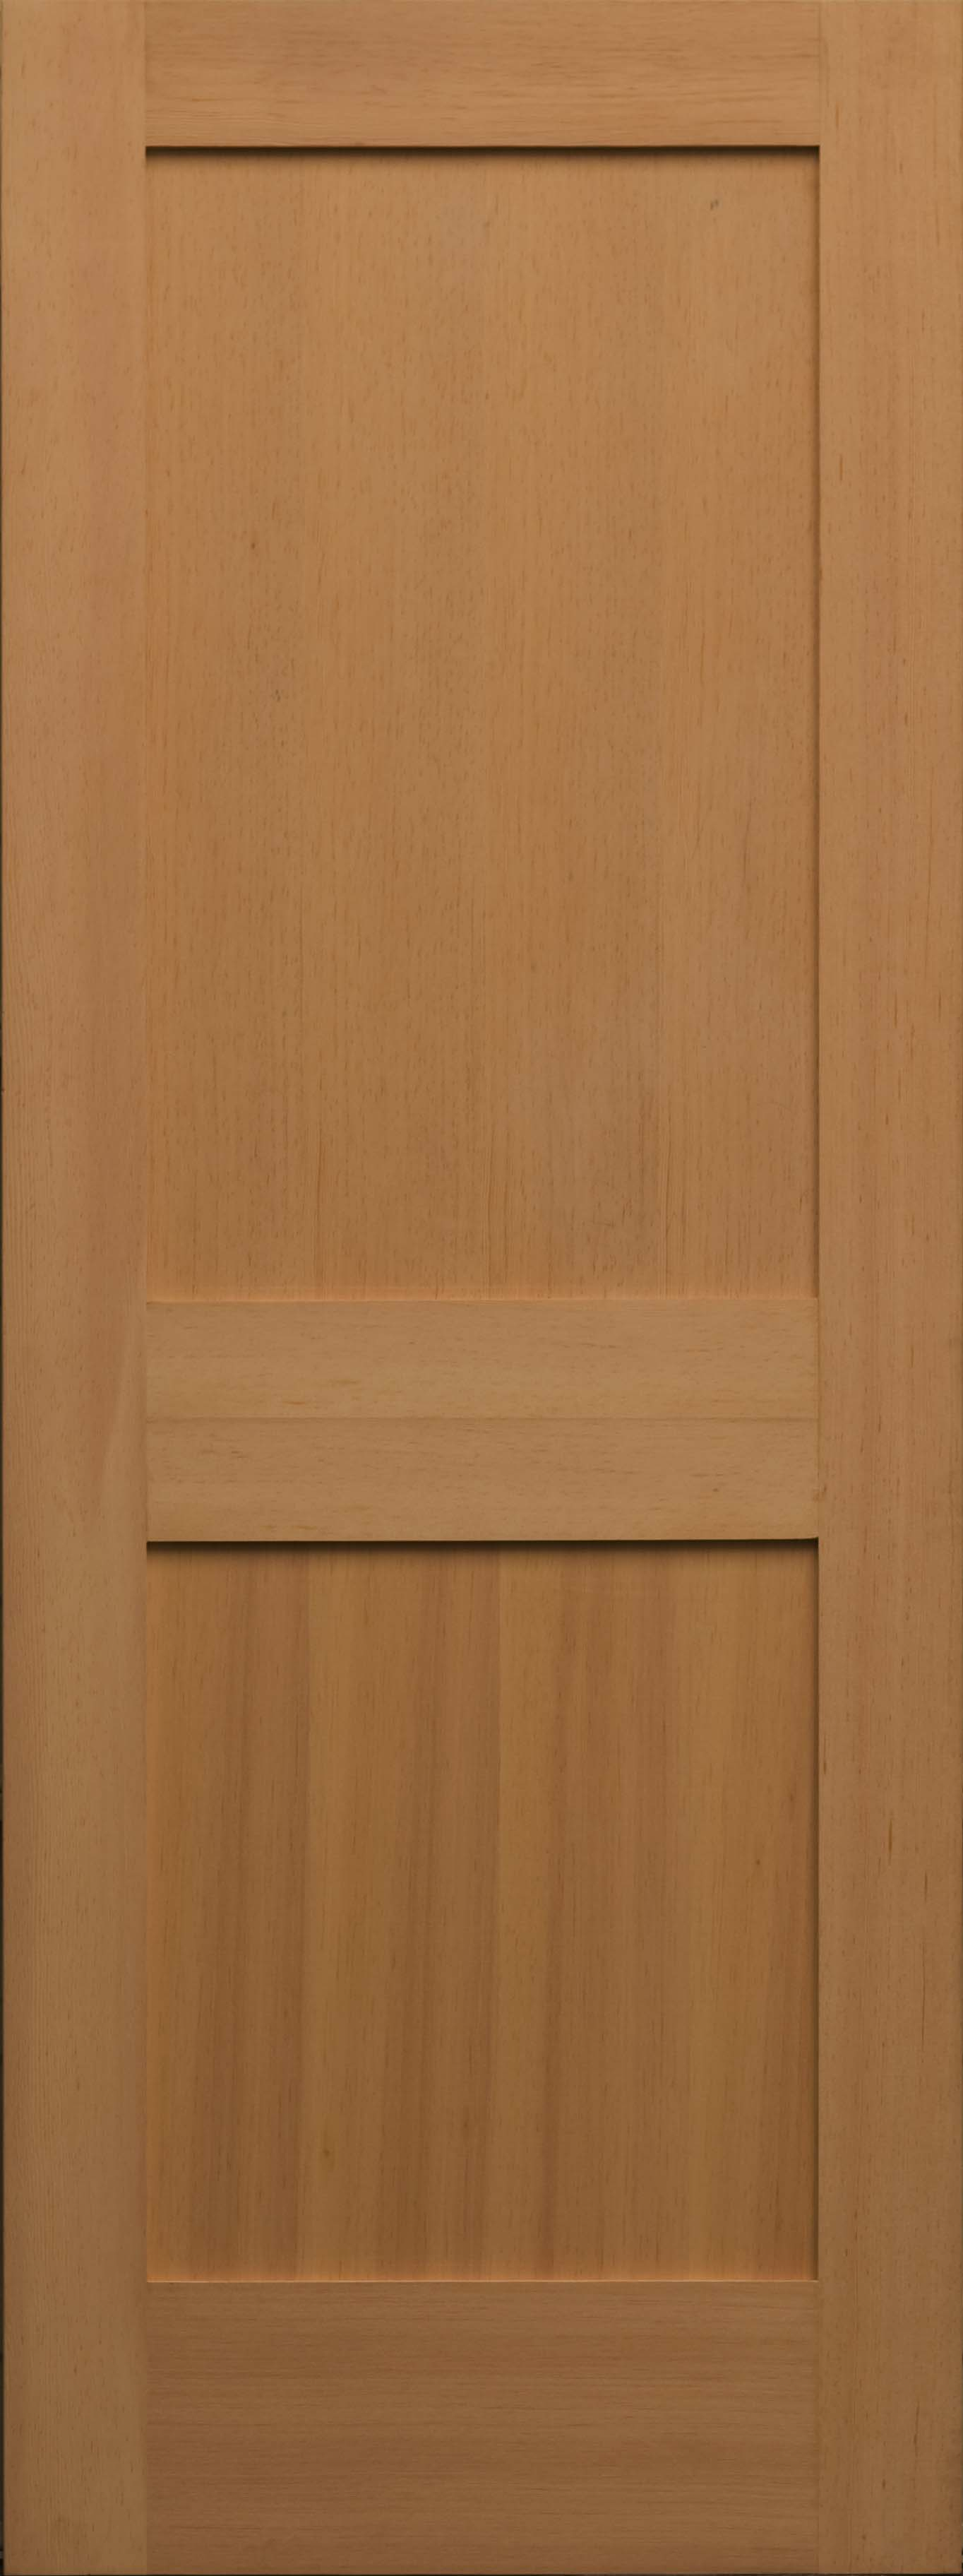 may features panel flat be after installation doors and interior or their core painted solid varnished